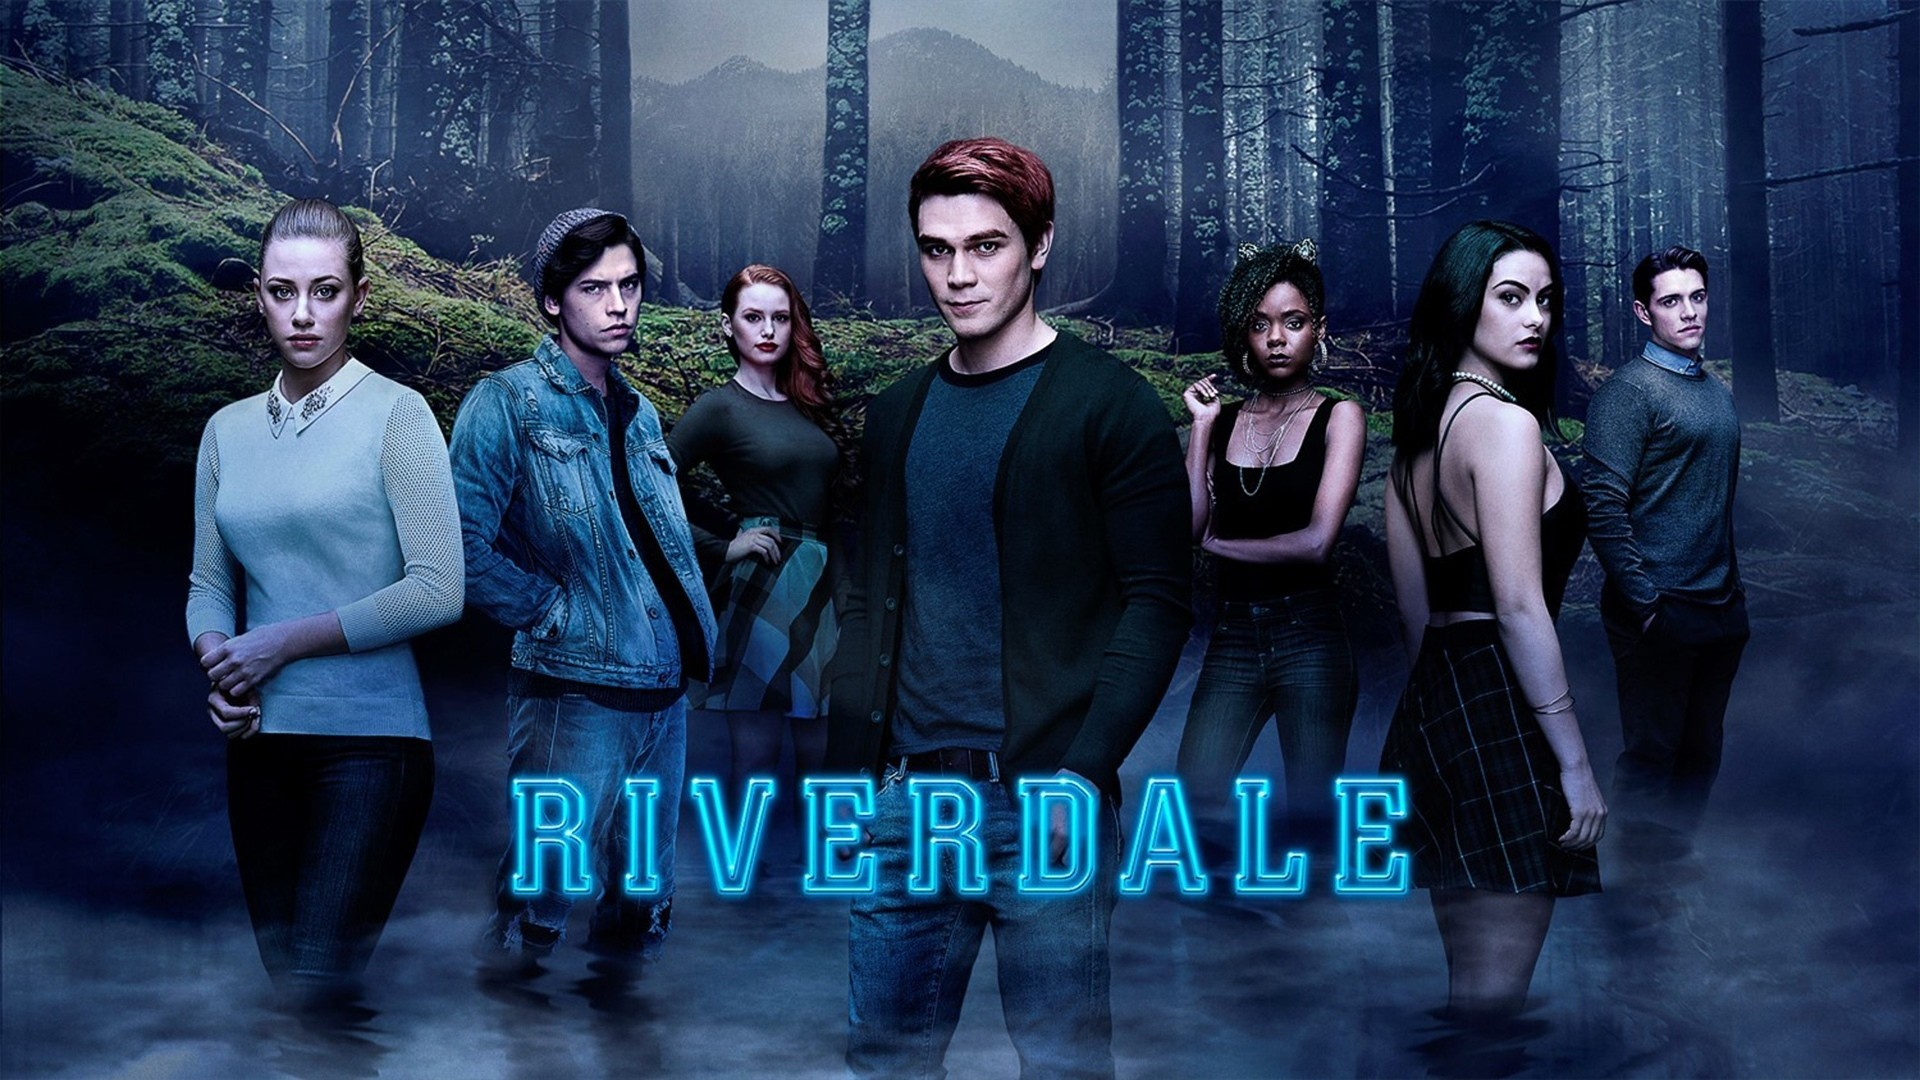 Riverdale Free Wallpaper and Background